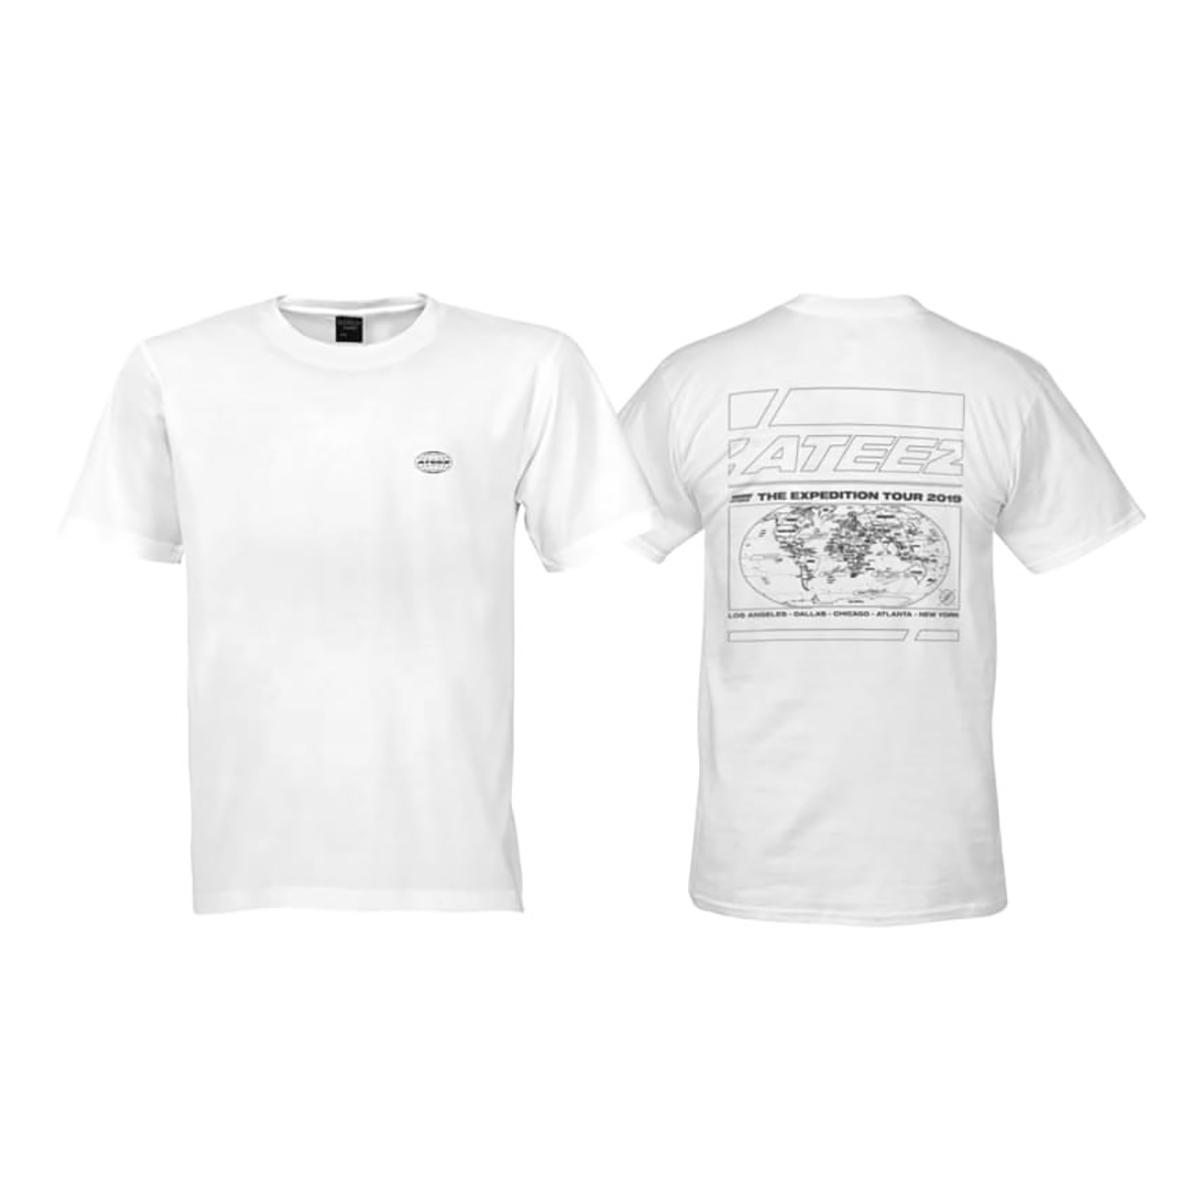 White 'The Expedition Tour' Tshirt - With Cities